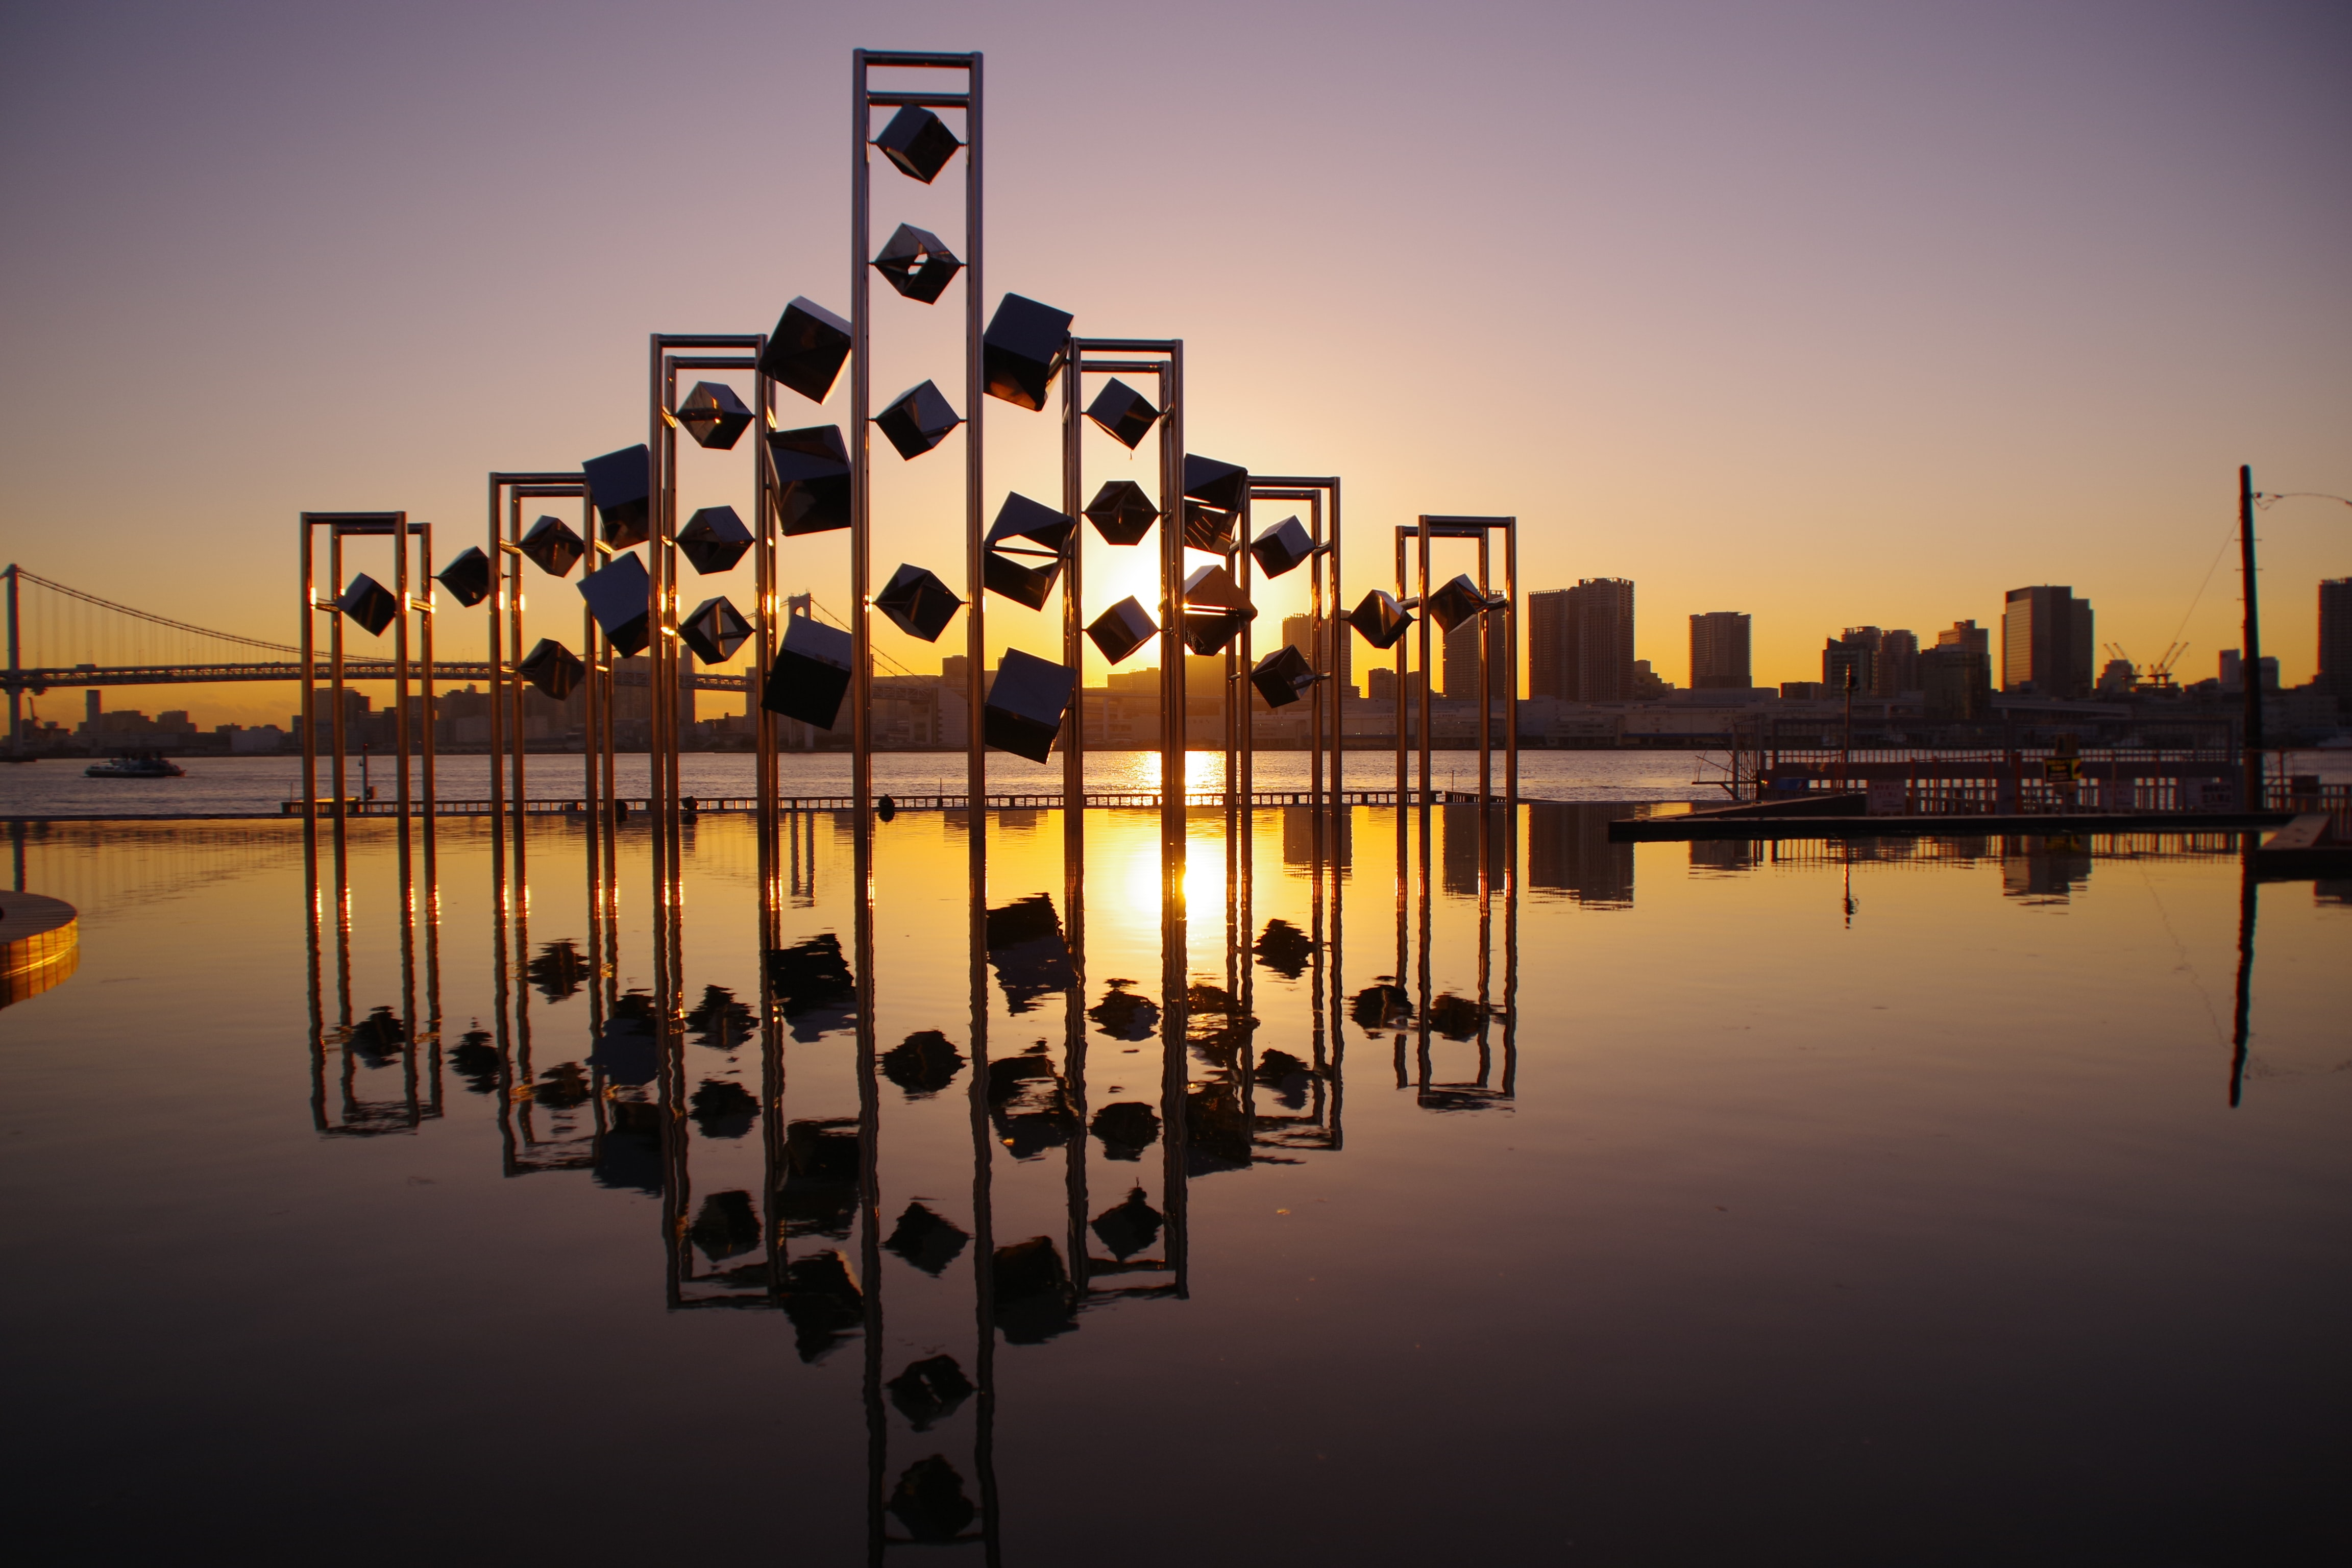 panoramic photography of buildings and towers reflecting on body of water during sunset